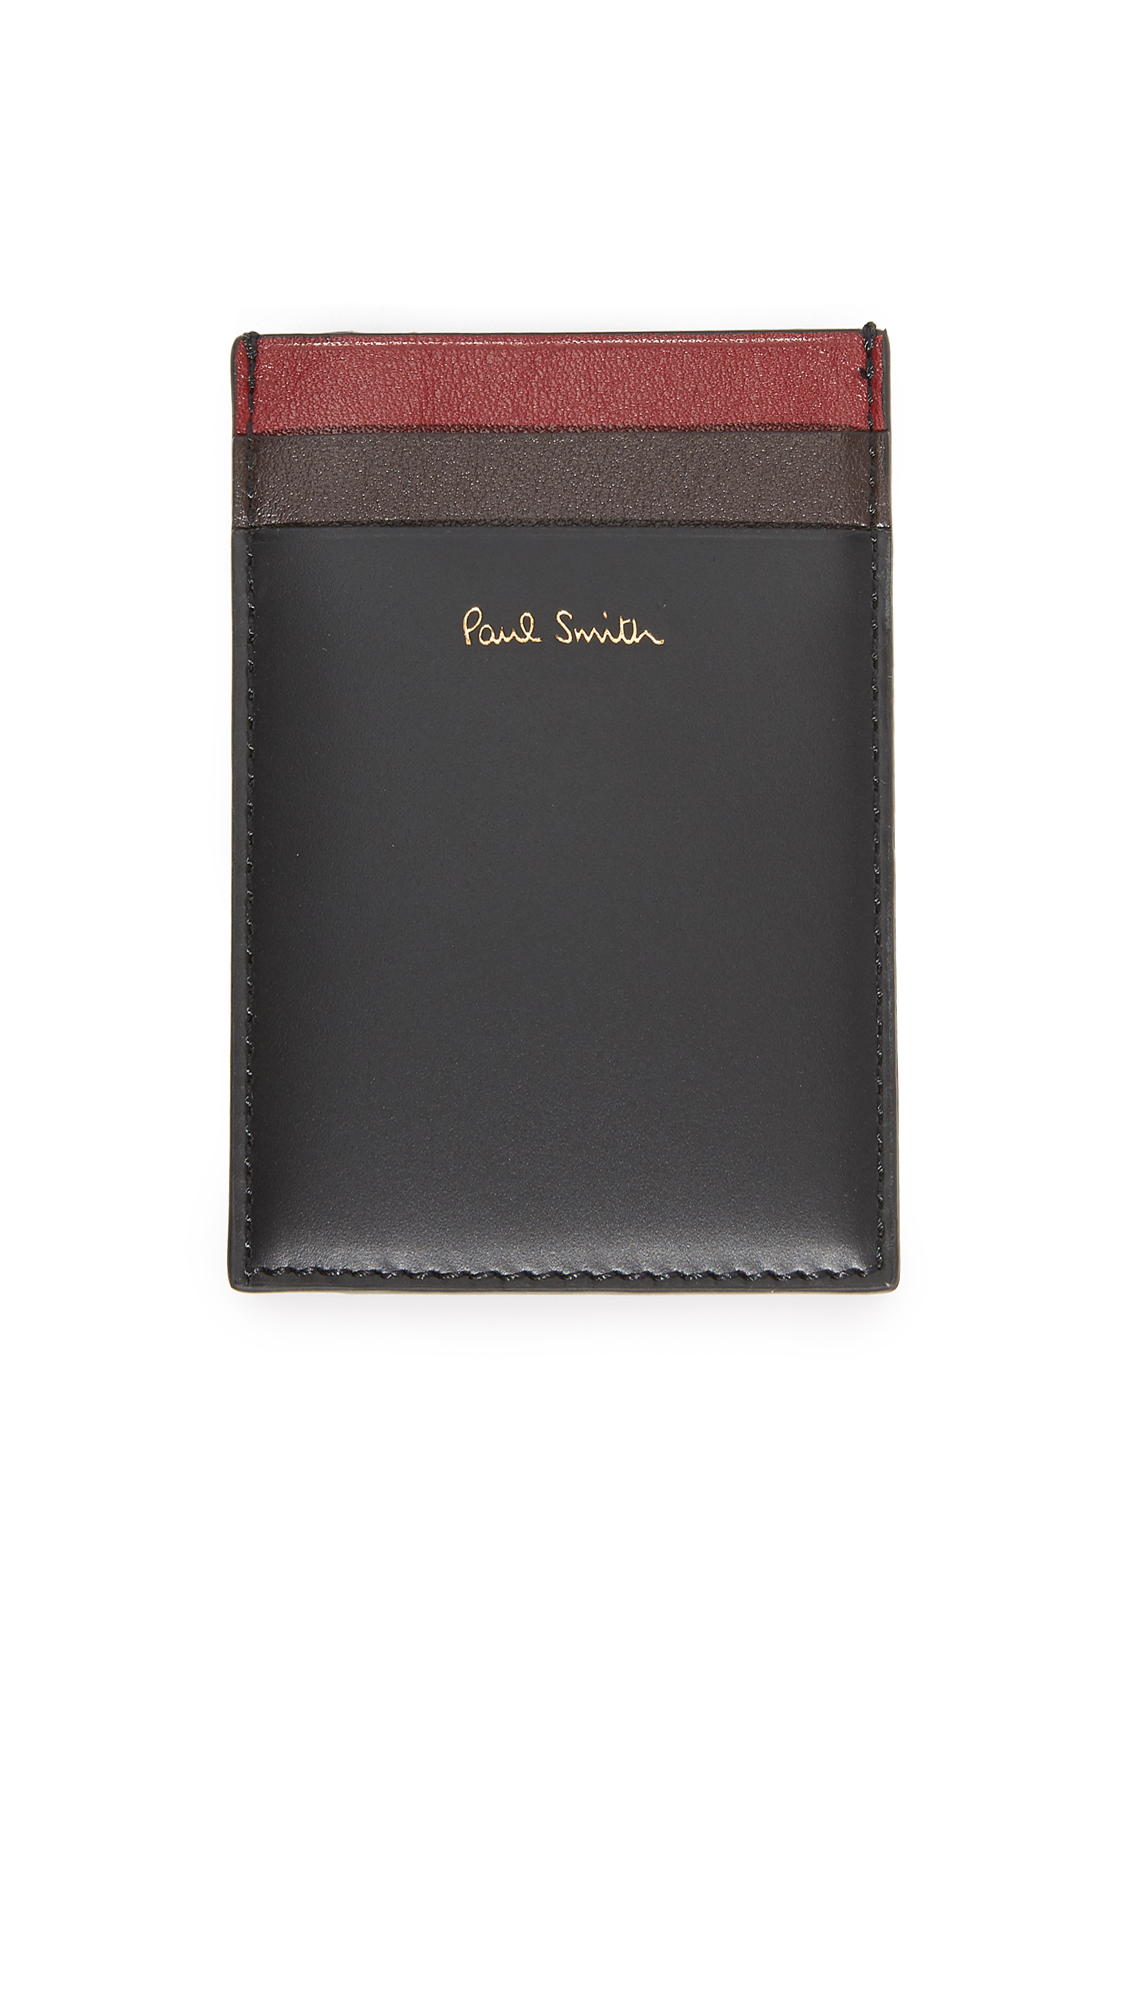 Paul Smith Cardholders North South Card Holder